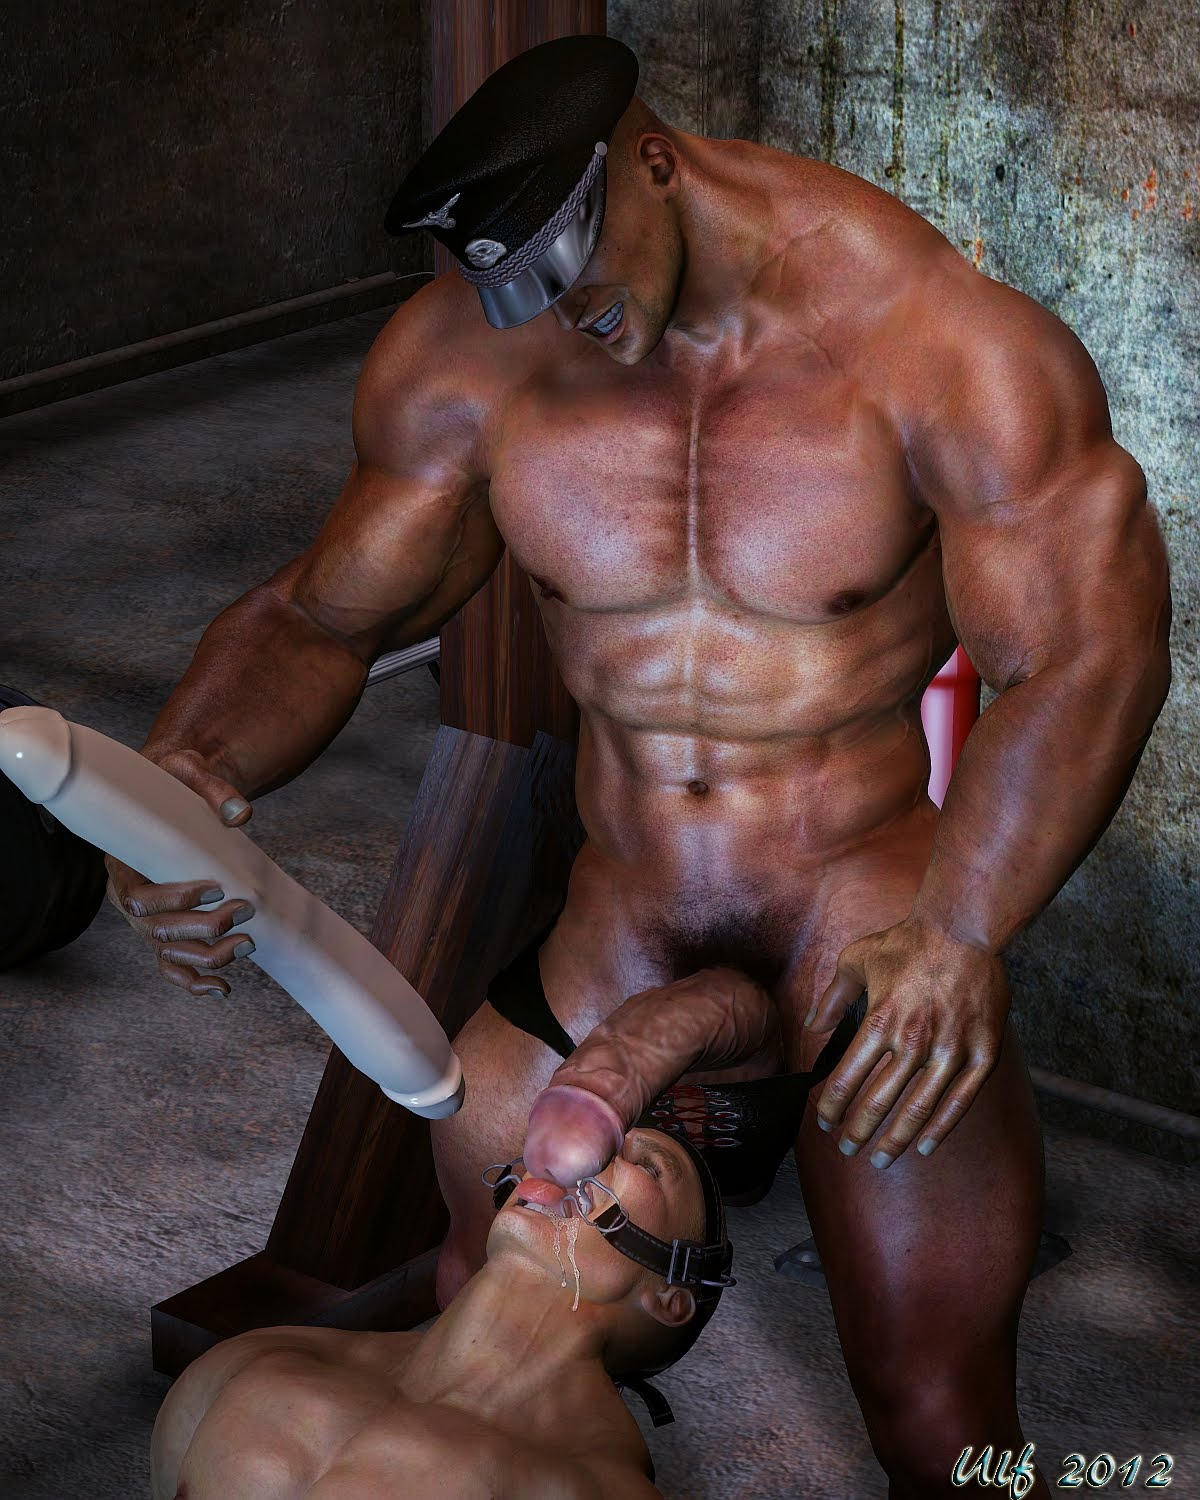 3 guys by fireplace gay xhamster